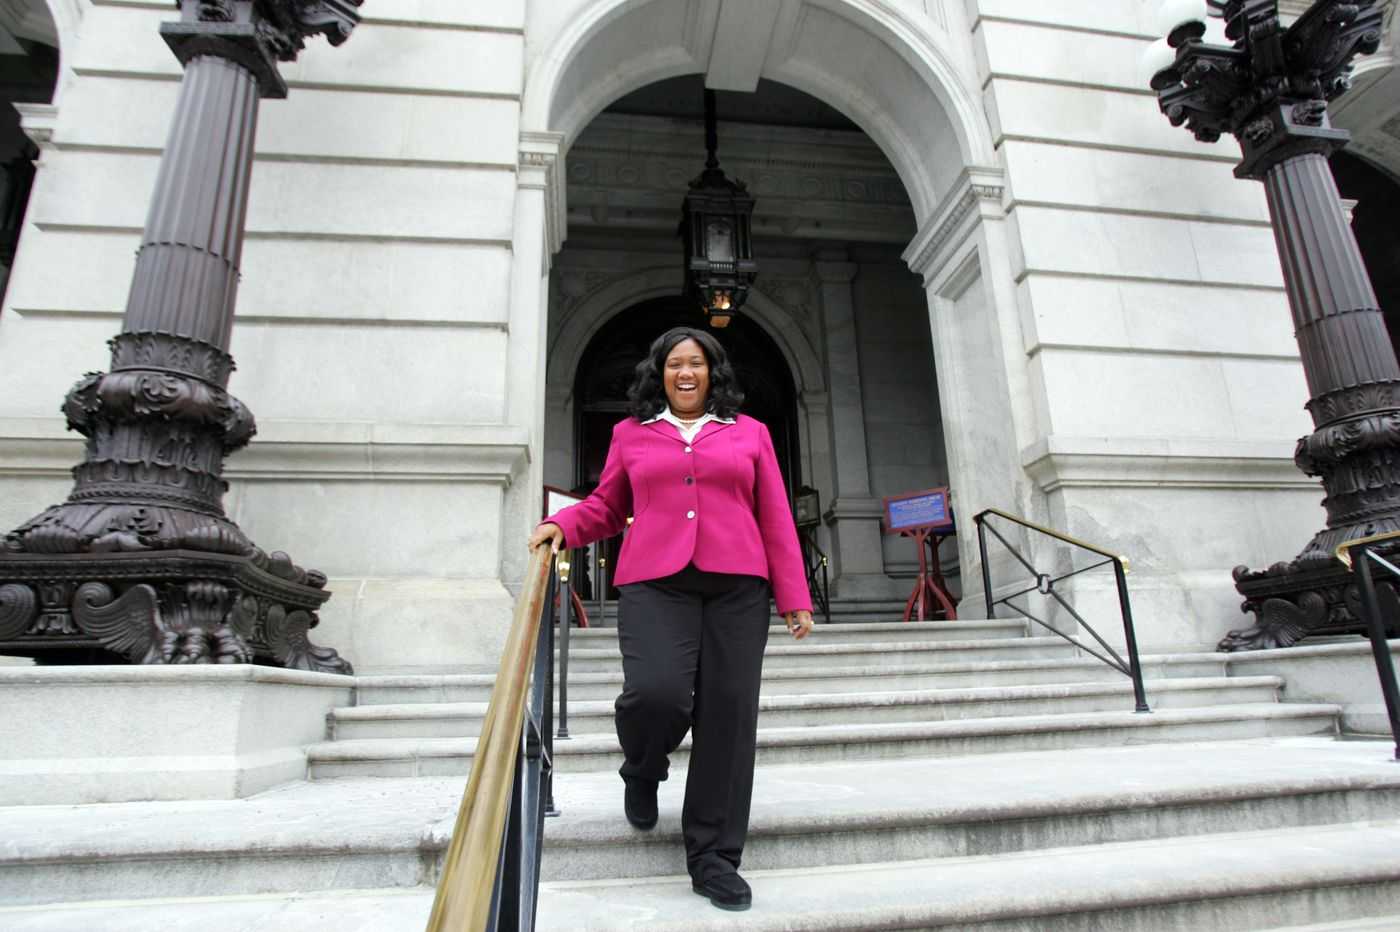 Prediction: Convicted felon will win state house race in Pa. | Editorial